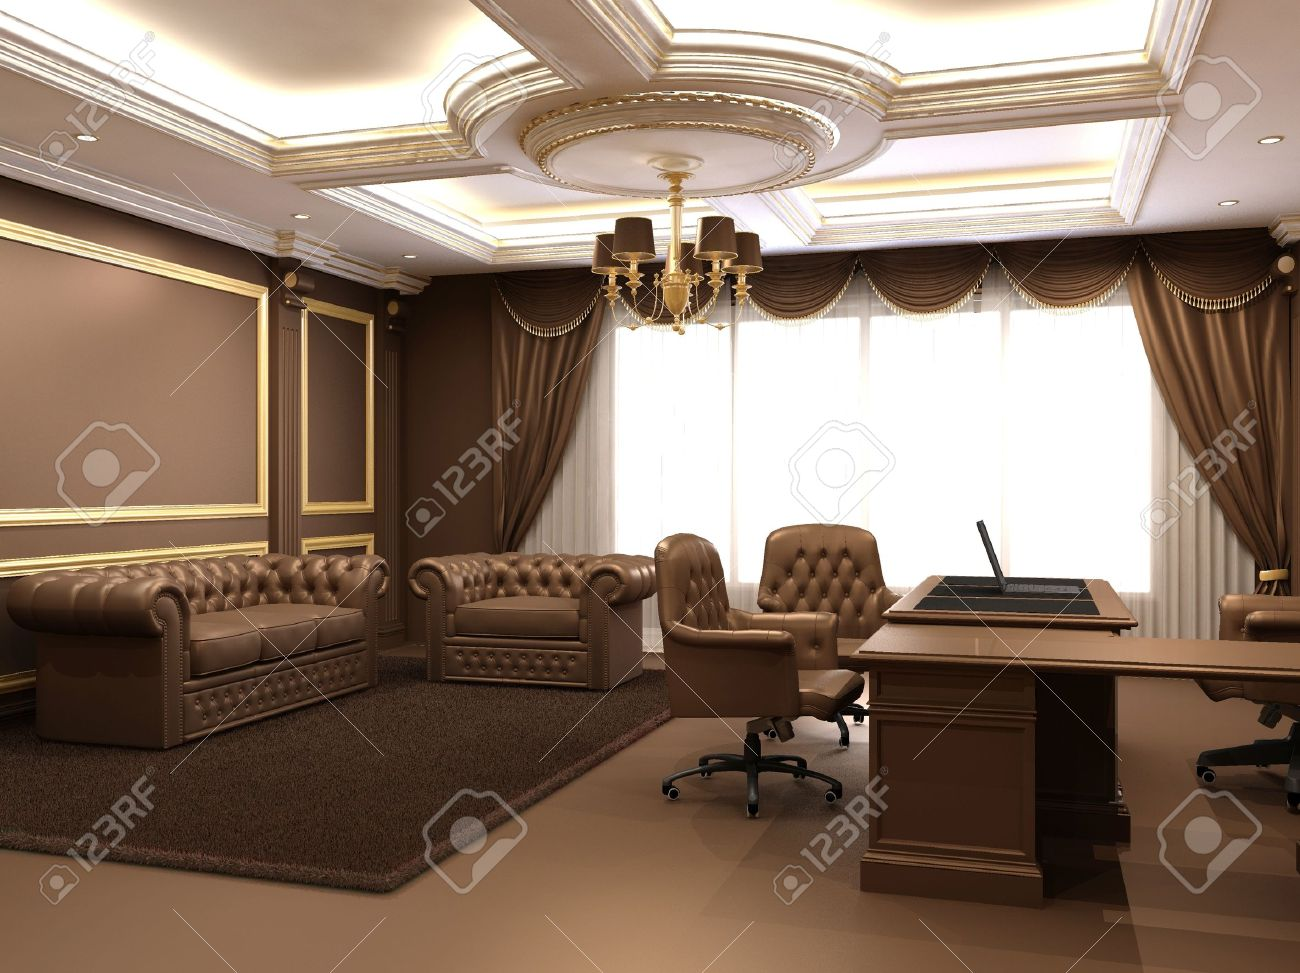 Modern Office In Wooden Royal Interior Space Stock Photo, Picture